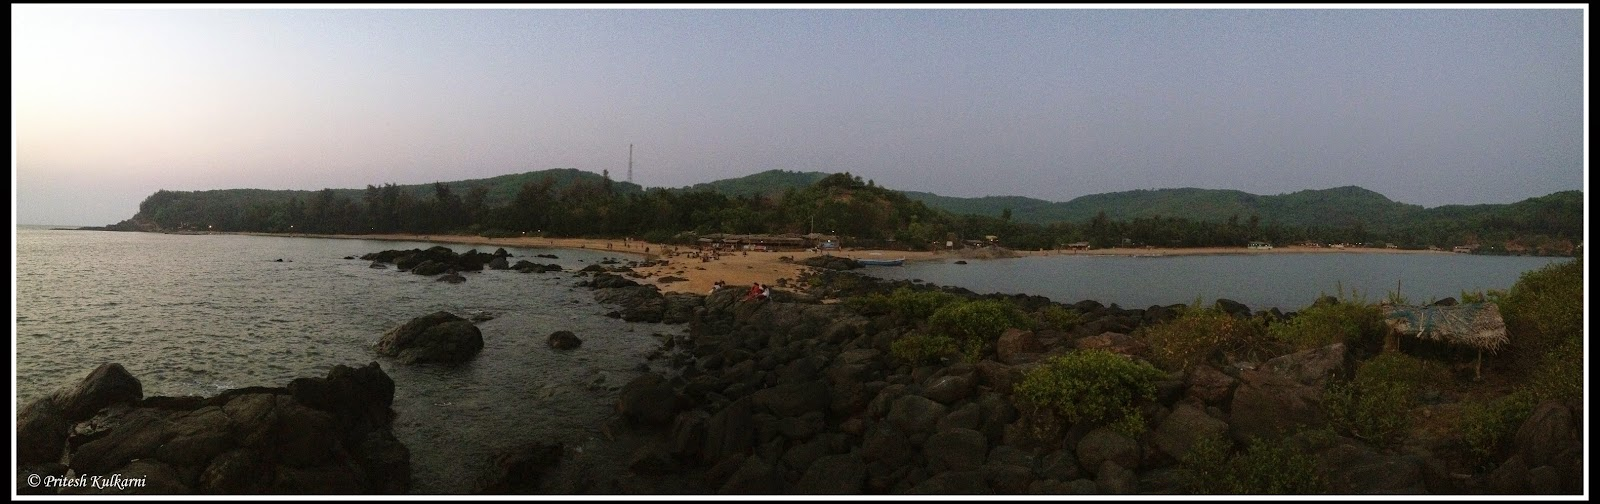 Panorama view of Om beach